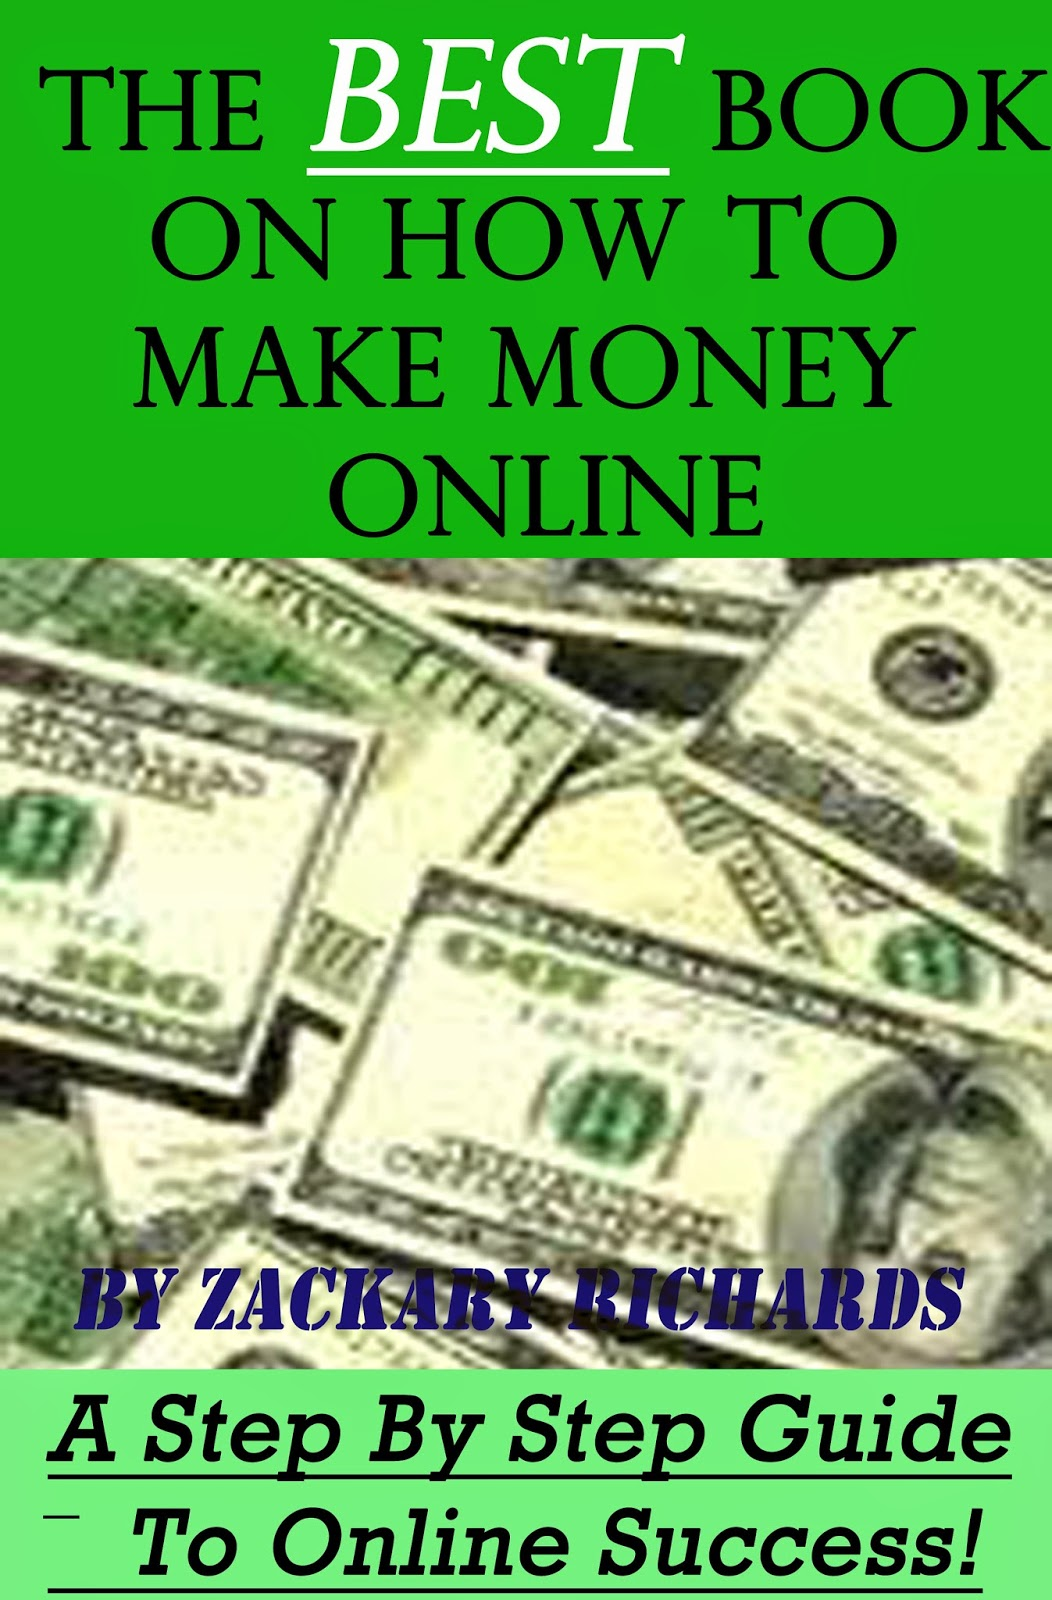 How To Make A Book Cover Step By Step : The best book on how to make money online a step by